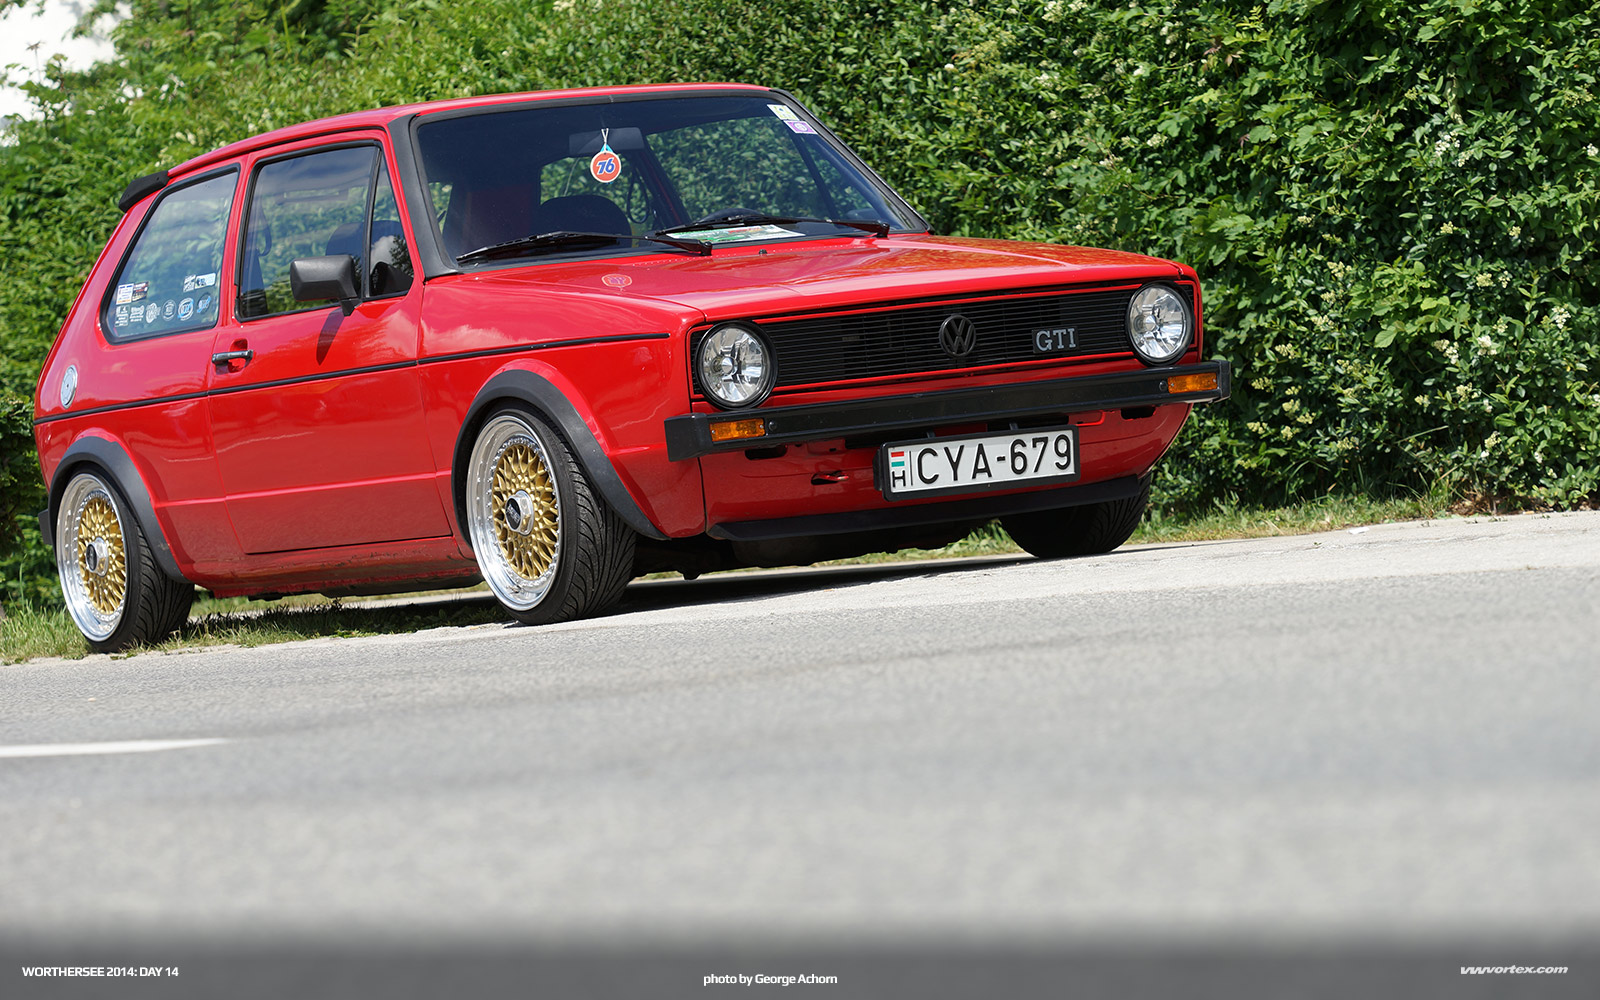 2014-Worthersee-Day-14-VWvortex-863